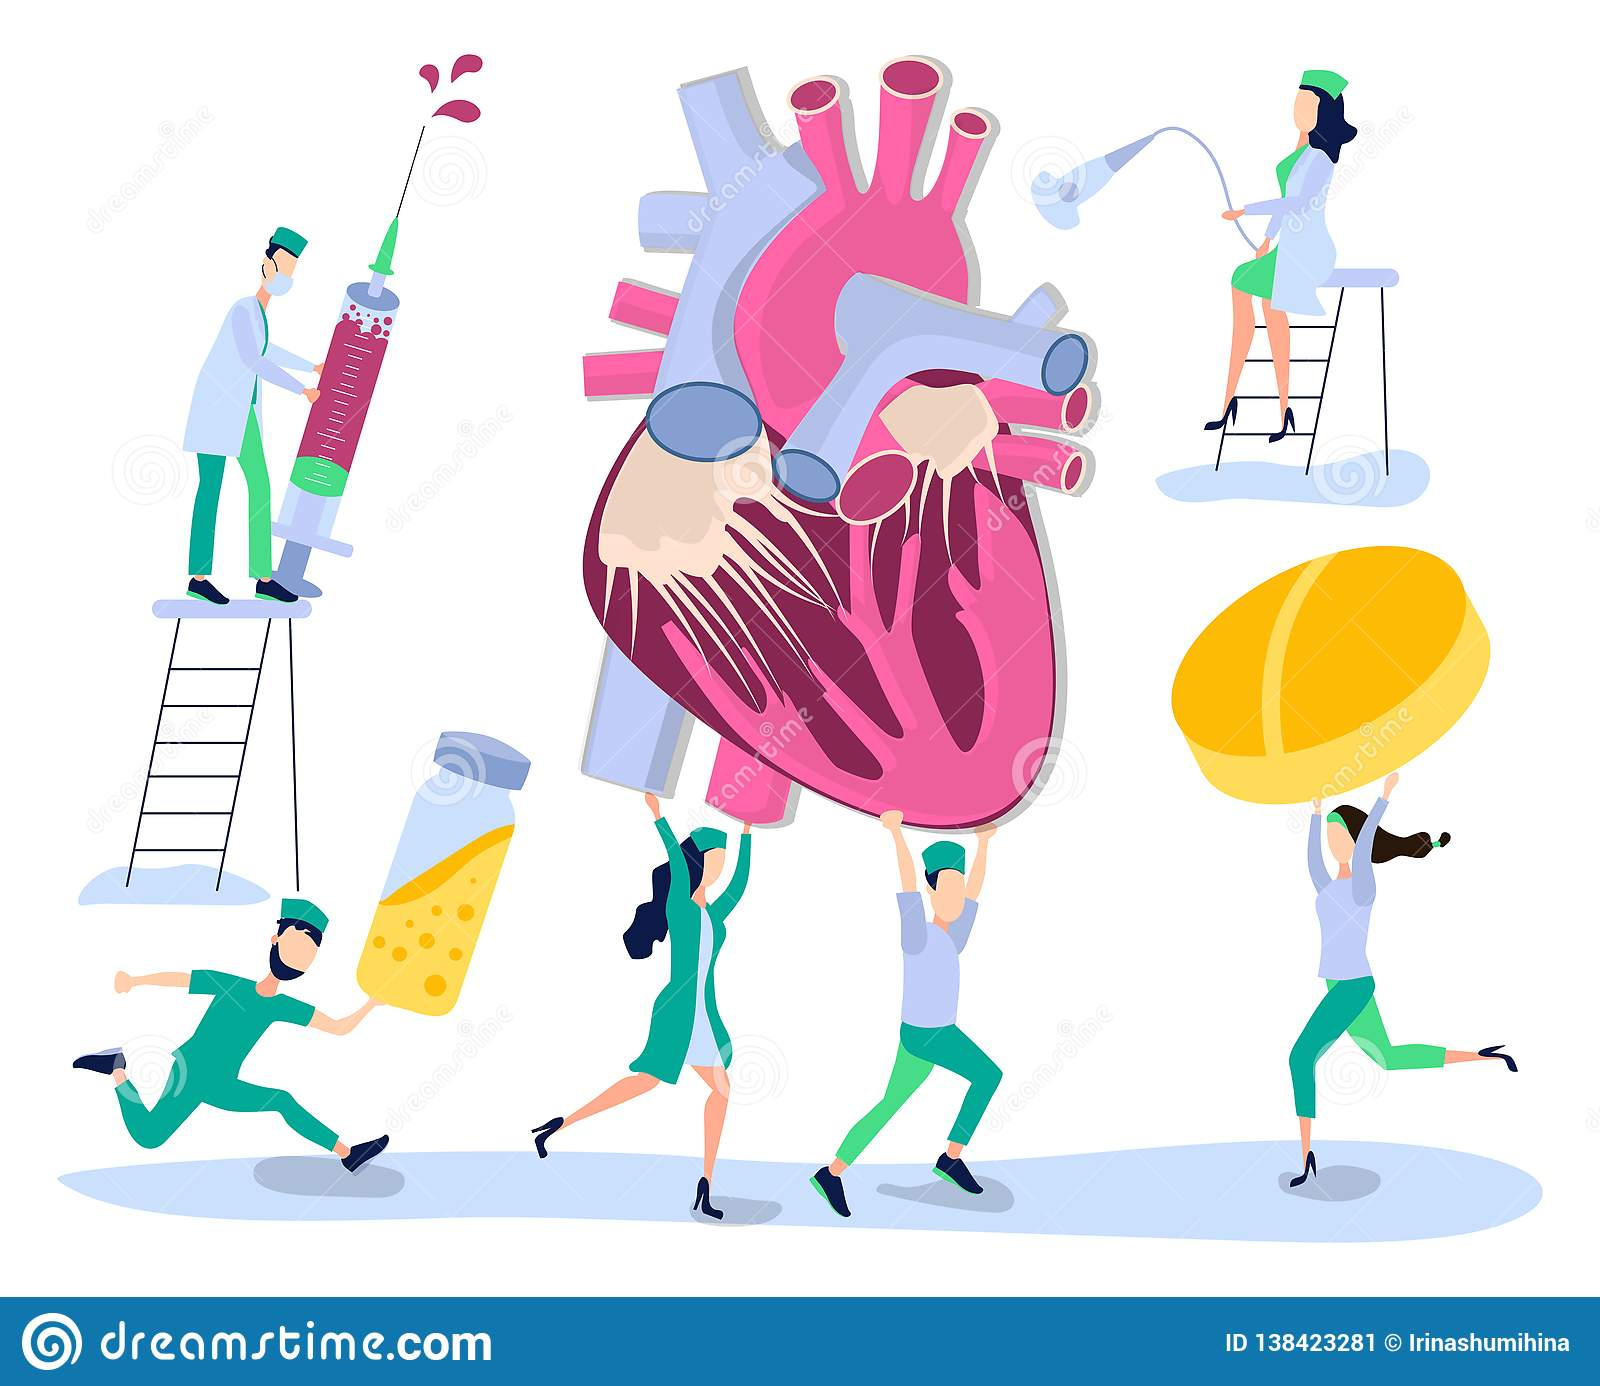 how is cardiac disease diagnosed